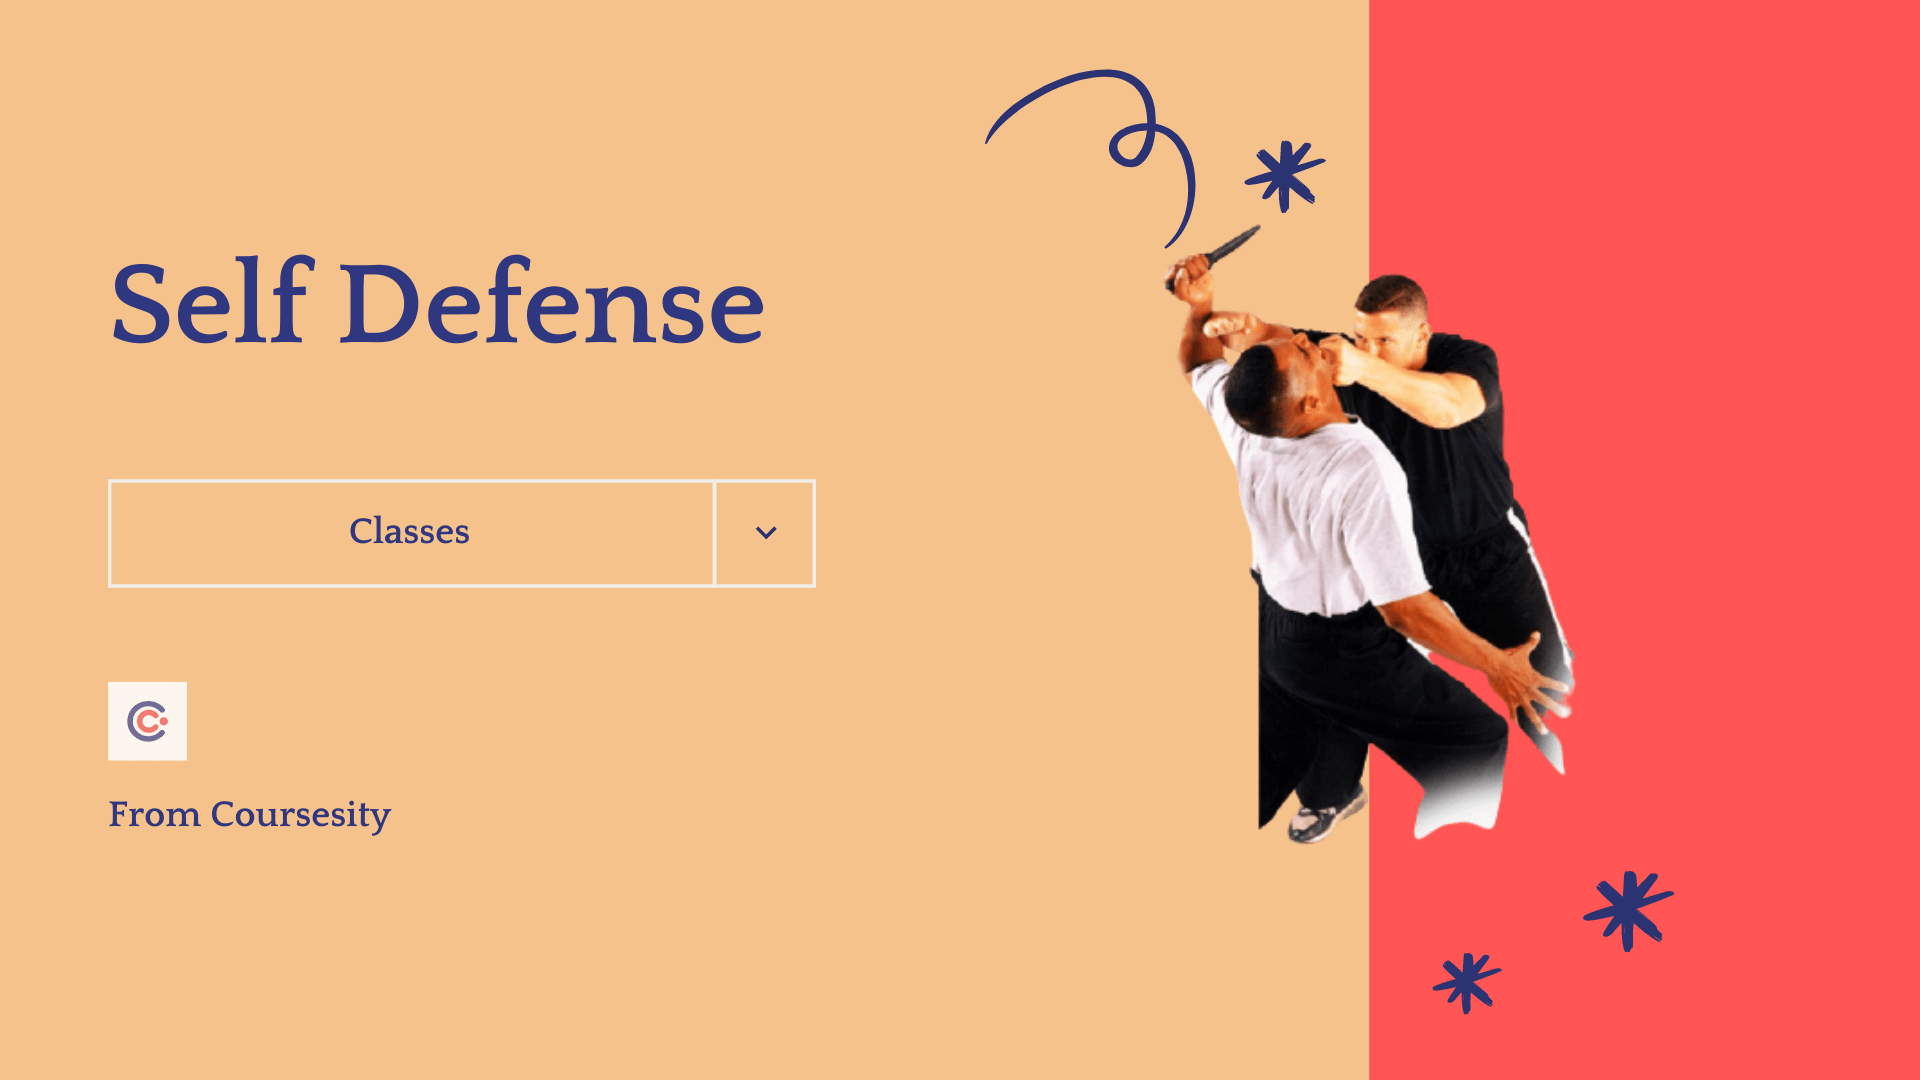 5 Best Self Defense Classes & Training - Learn Self Defense Online